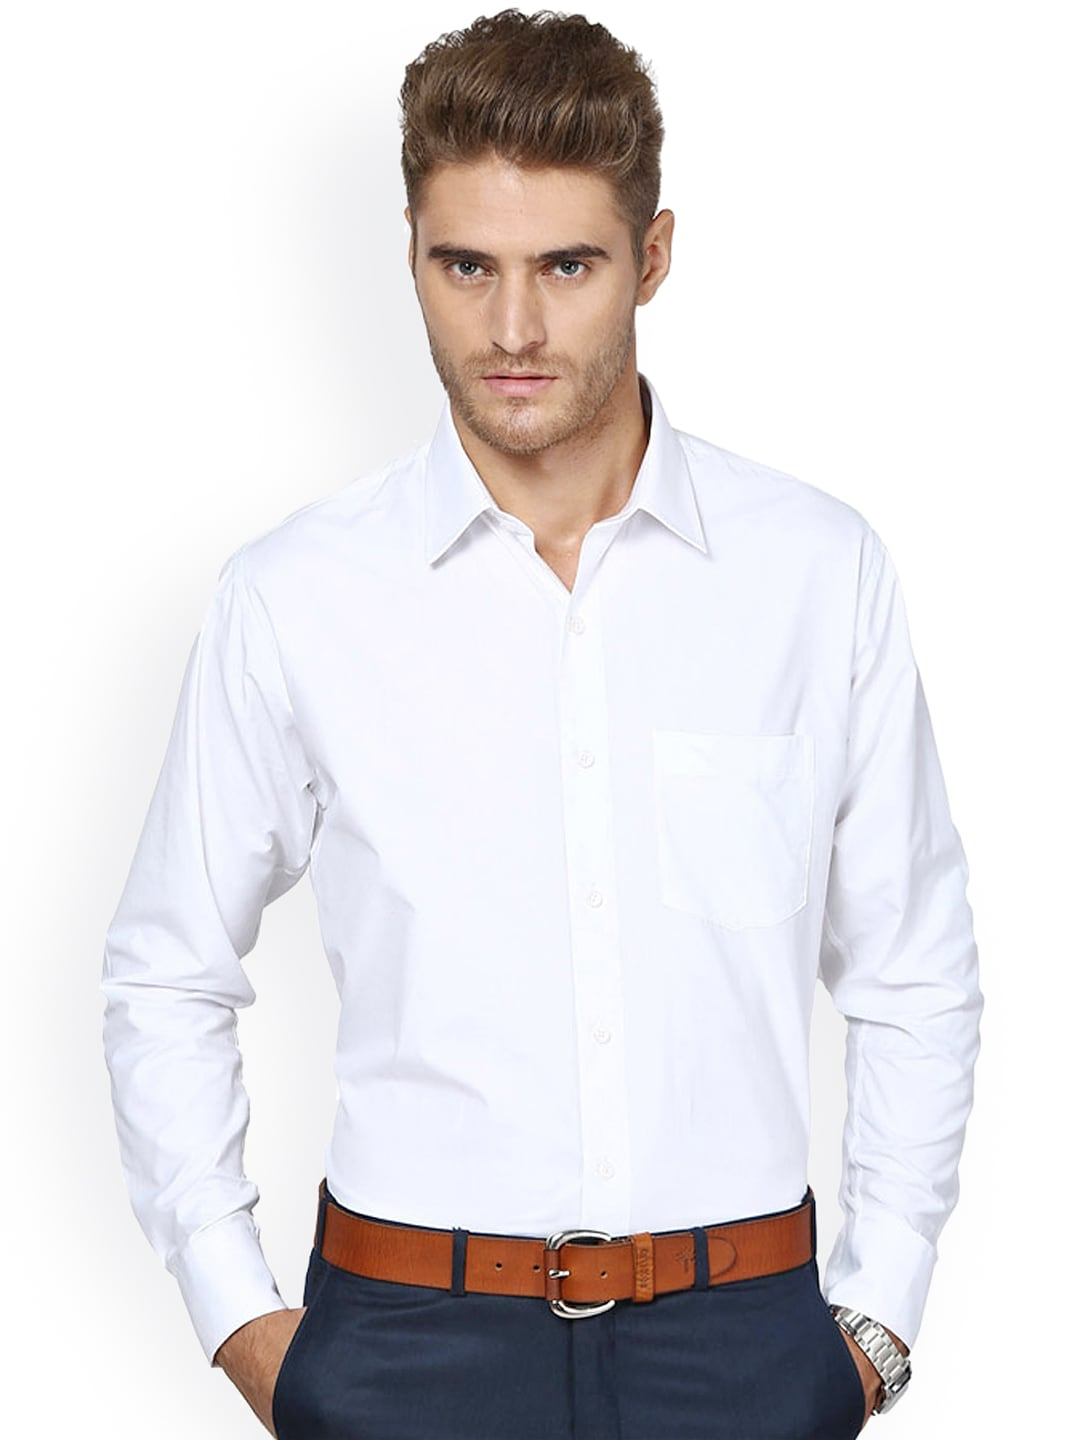 Mens formal white shirts shirts rock Buy white dress shirt